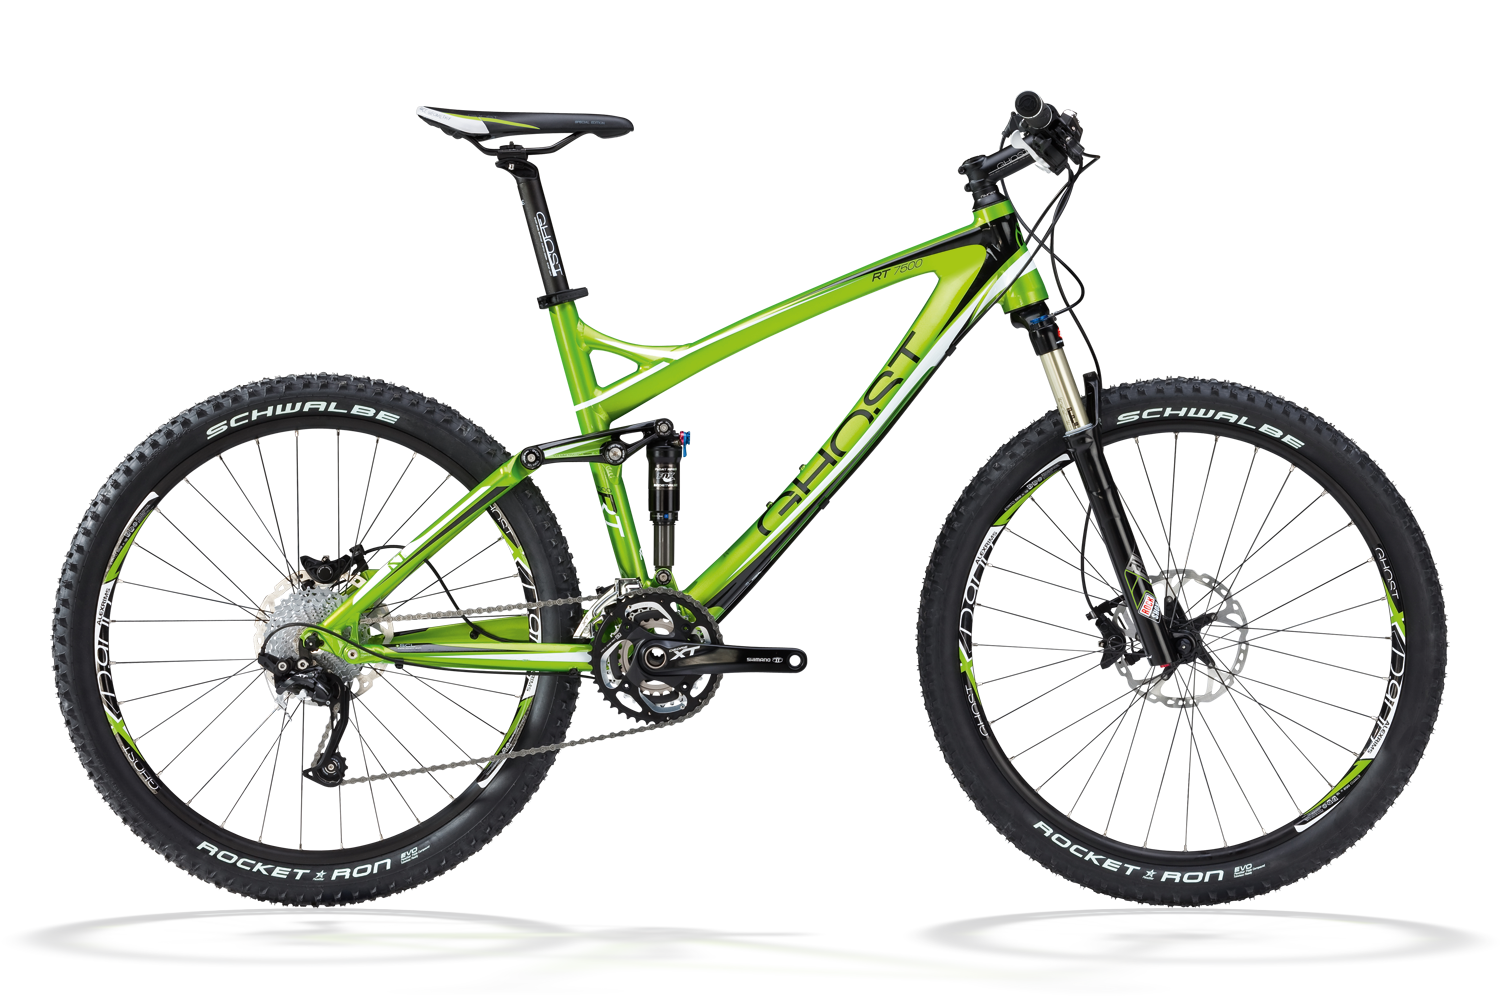 Ghost Rt Actinum 7500 2012 Review The Bike List